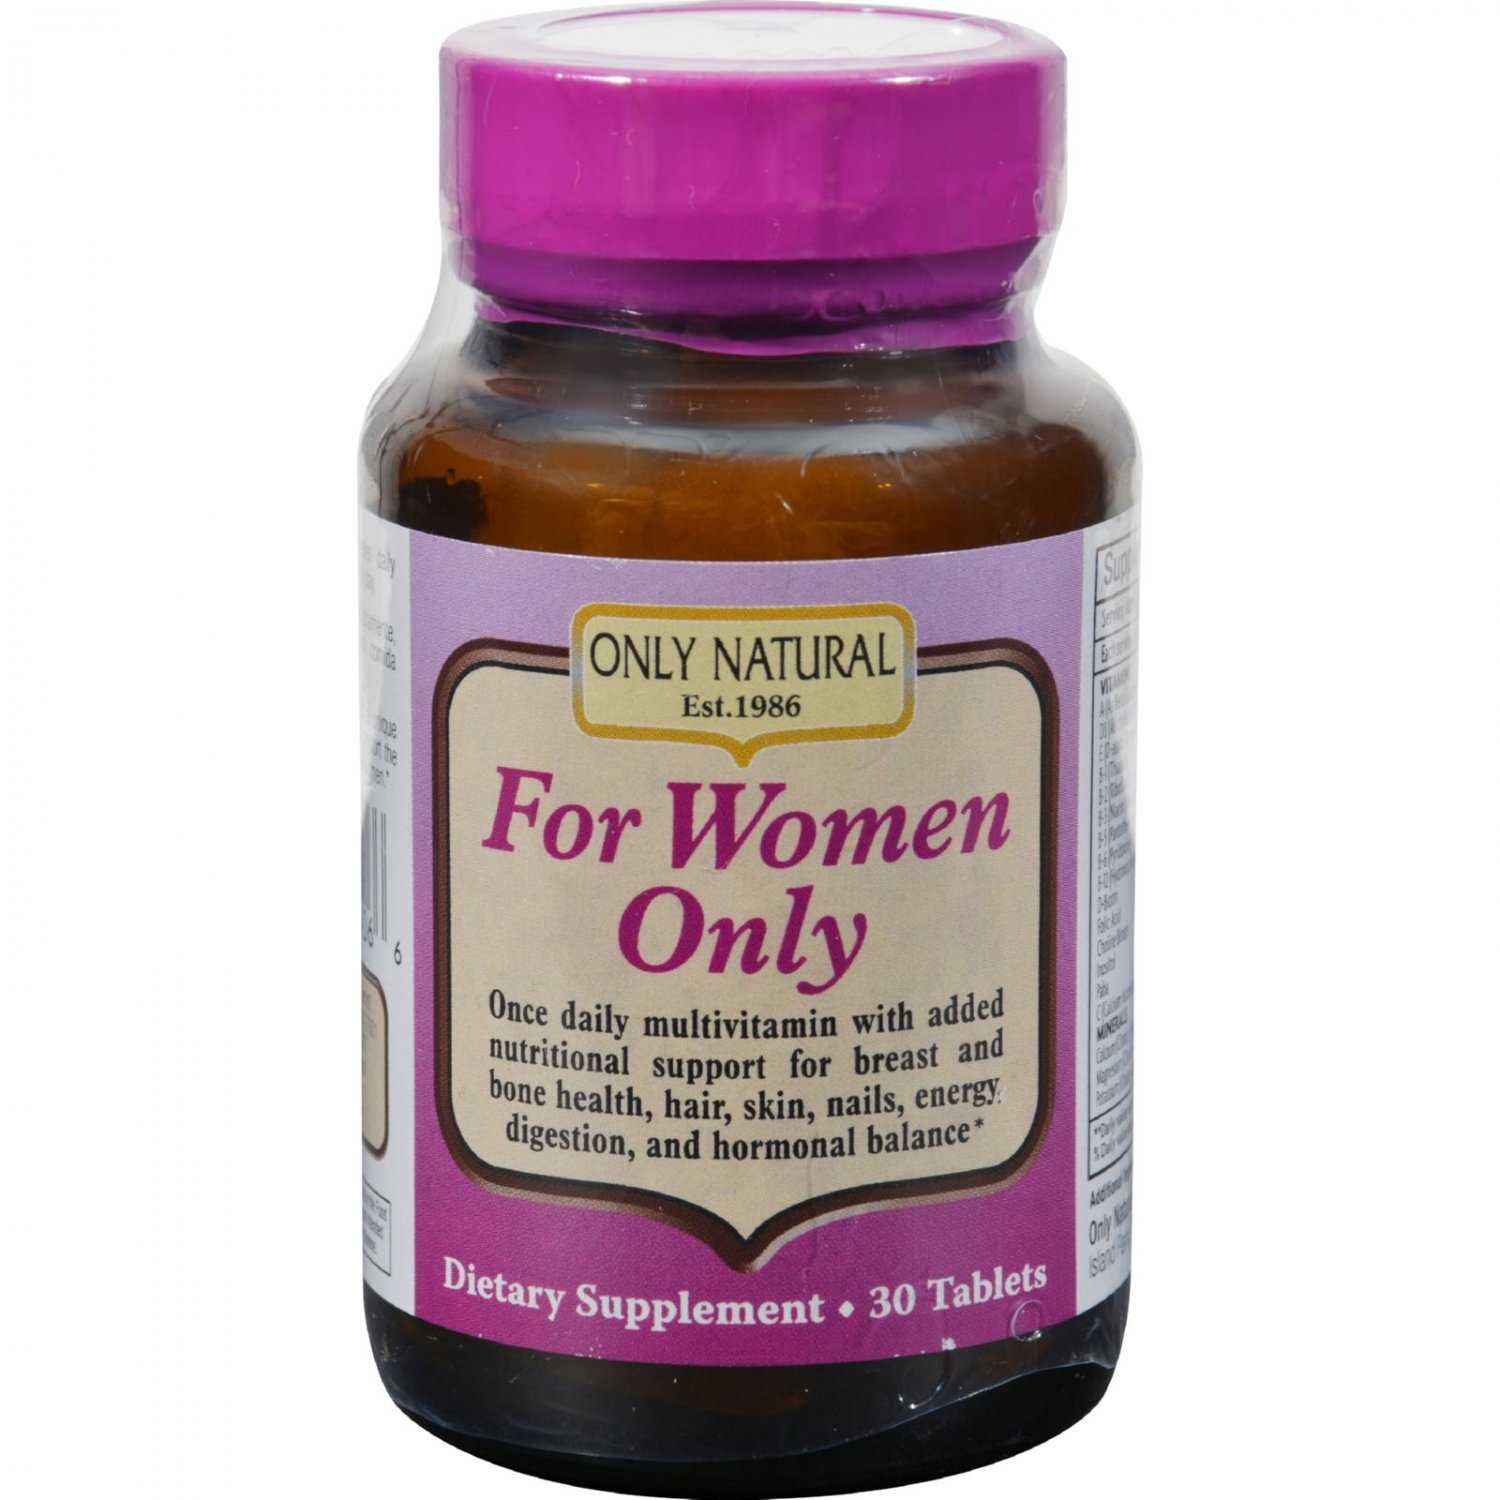 Only Natural For Women Only - 30 Tablets